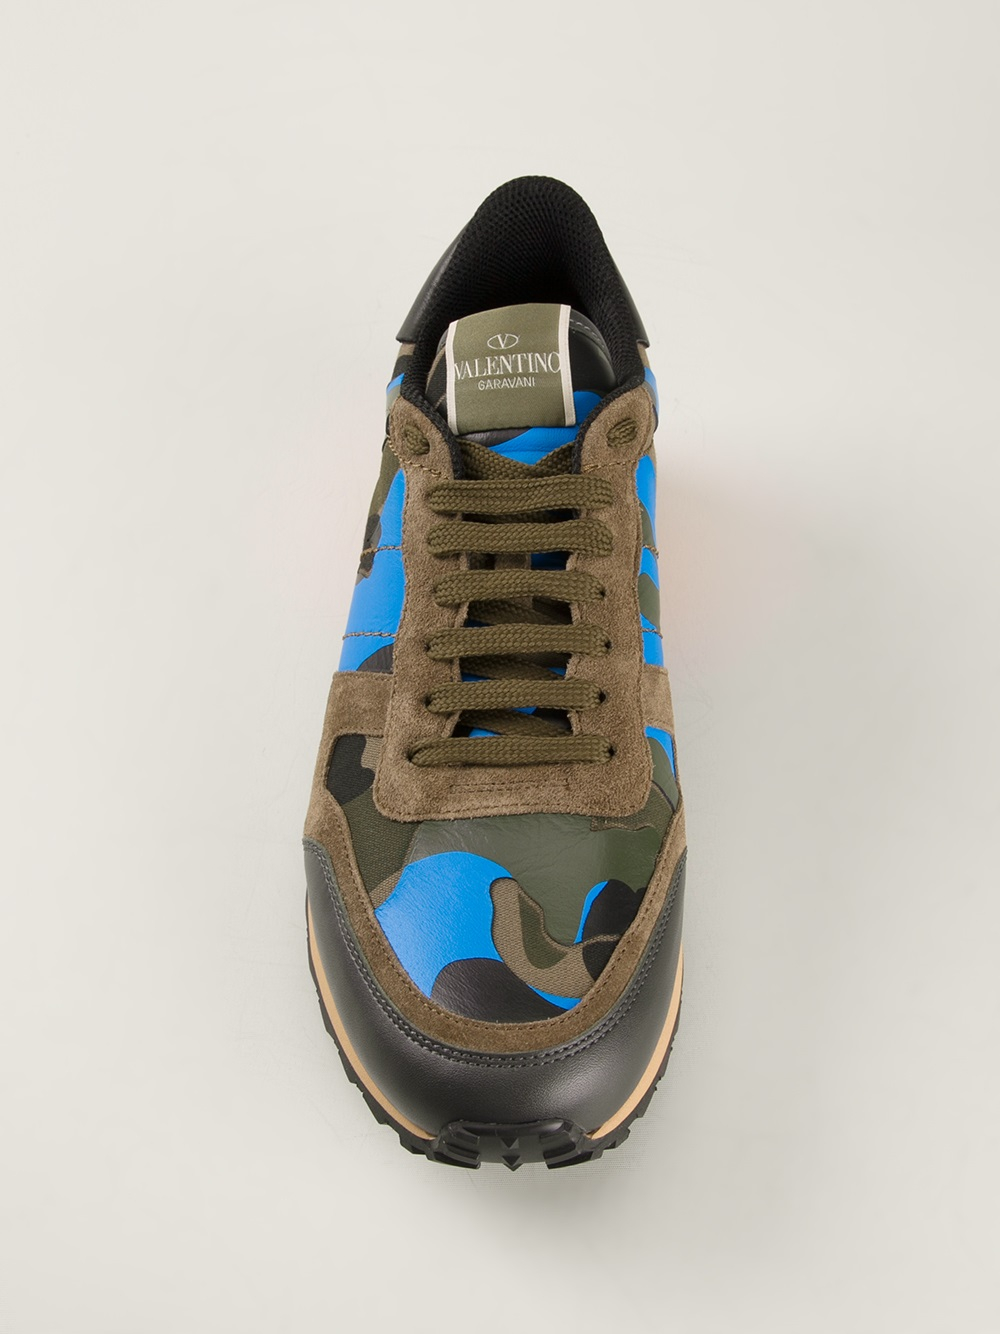 d962d59ae346 Green Men In Lyst Valentino For Rockstud Sneakers nxqw18C7